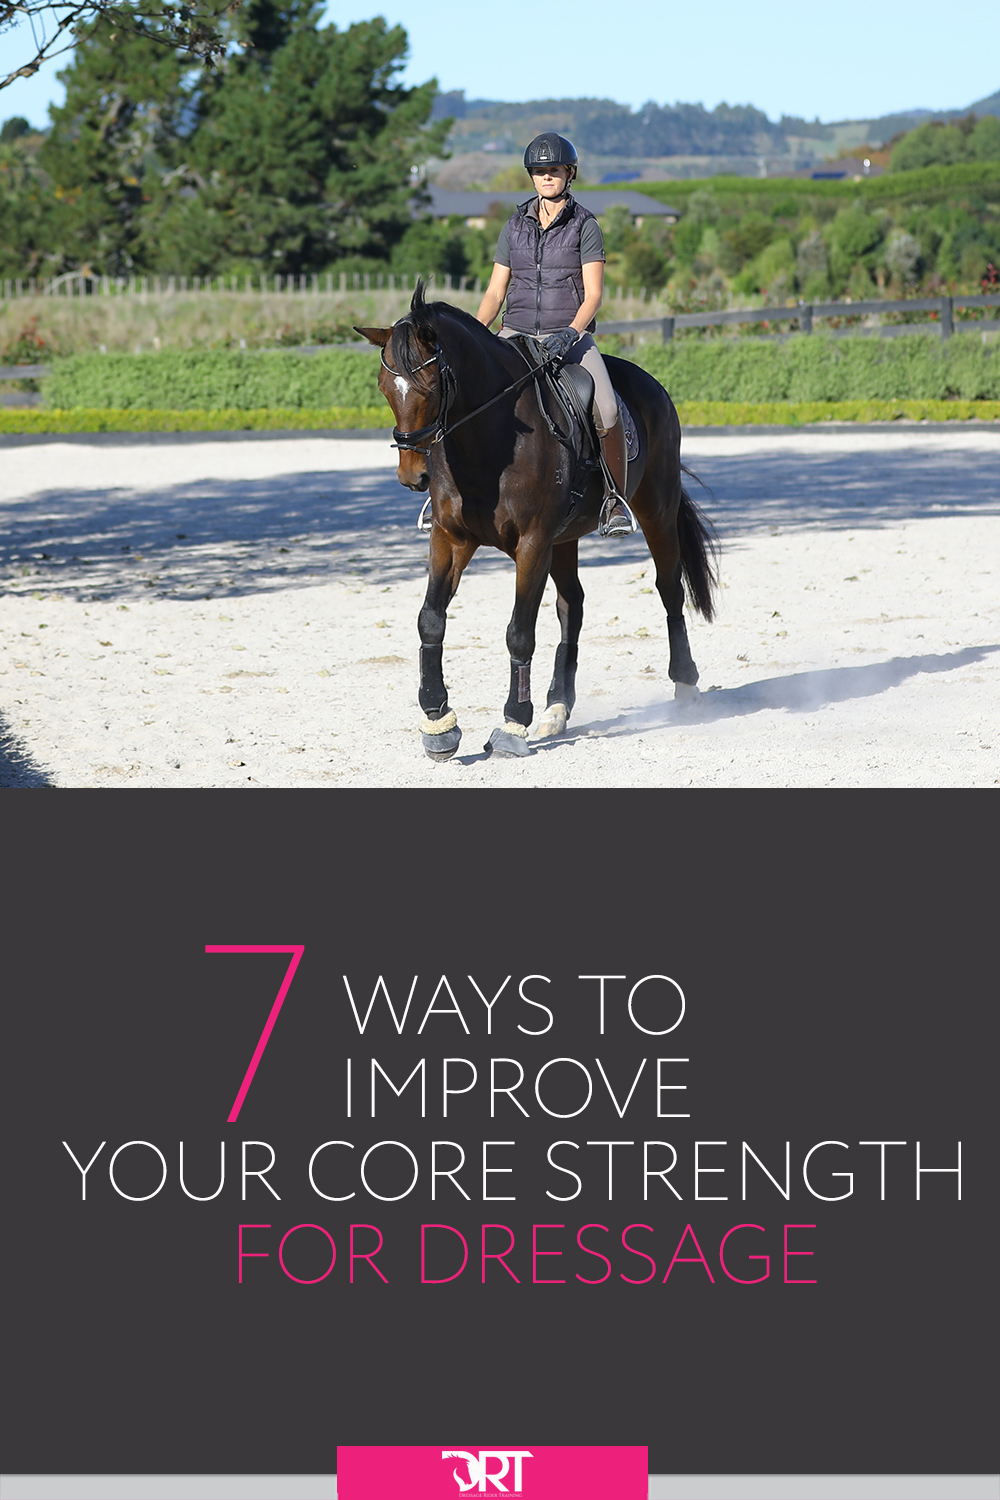 Here are 7 great exercises to help improve your core strength for dressage. 